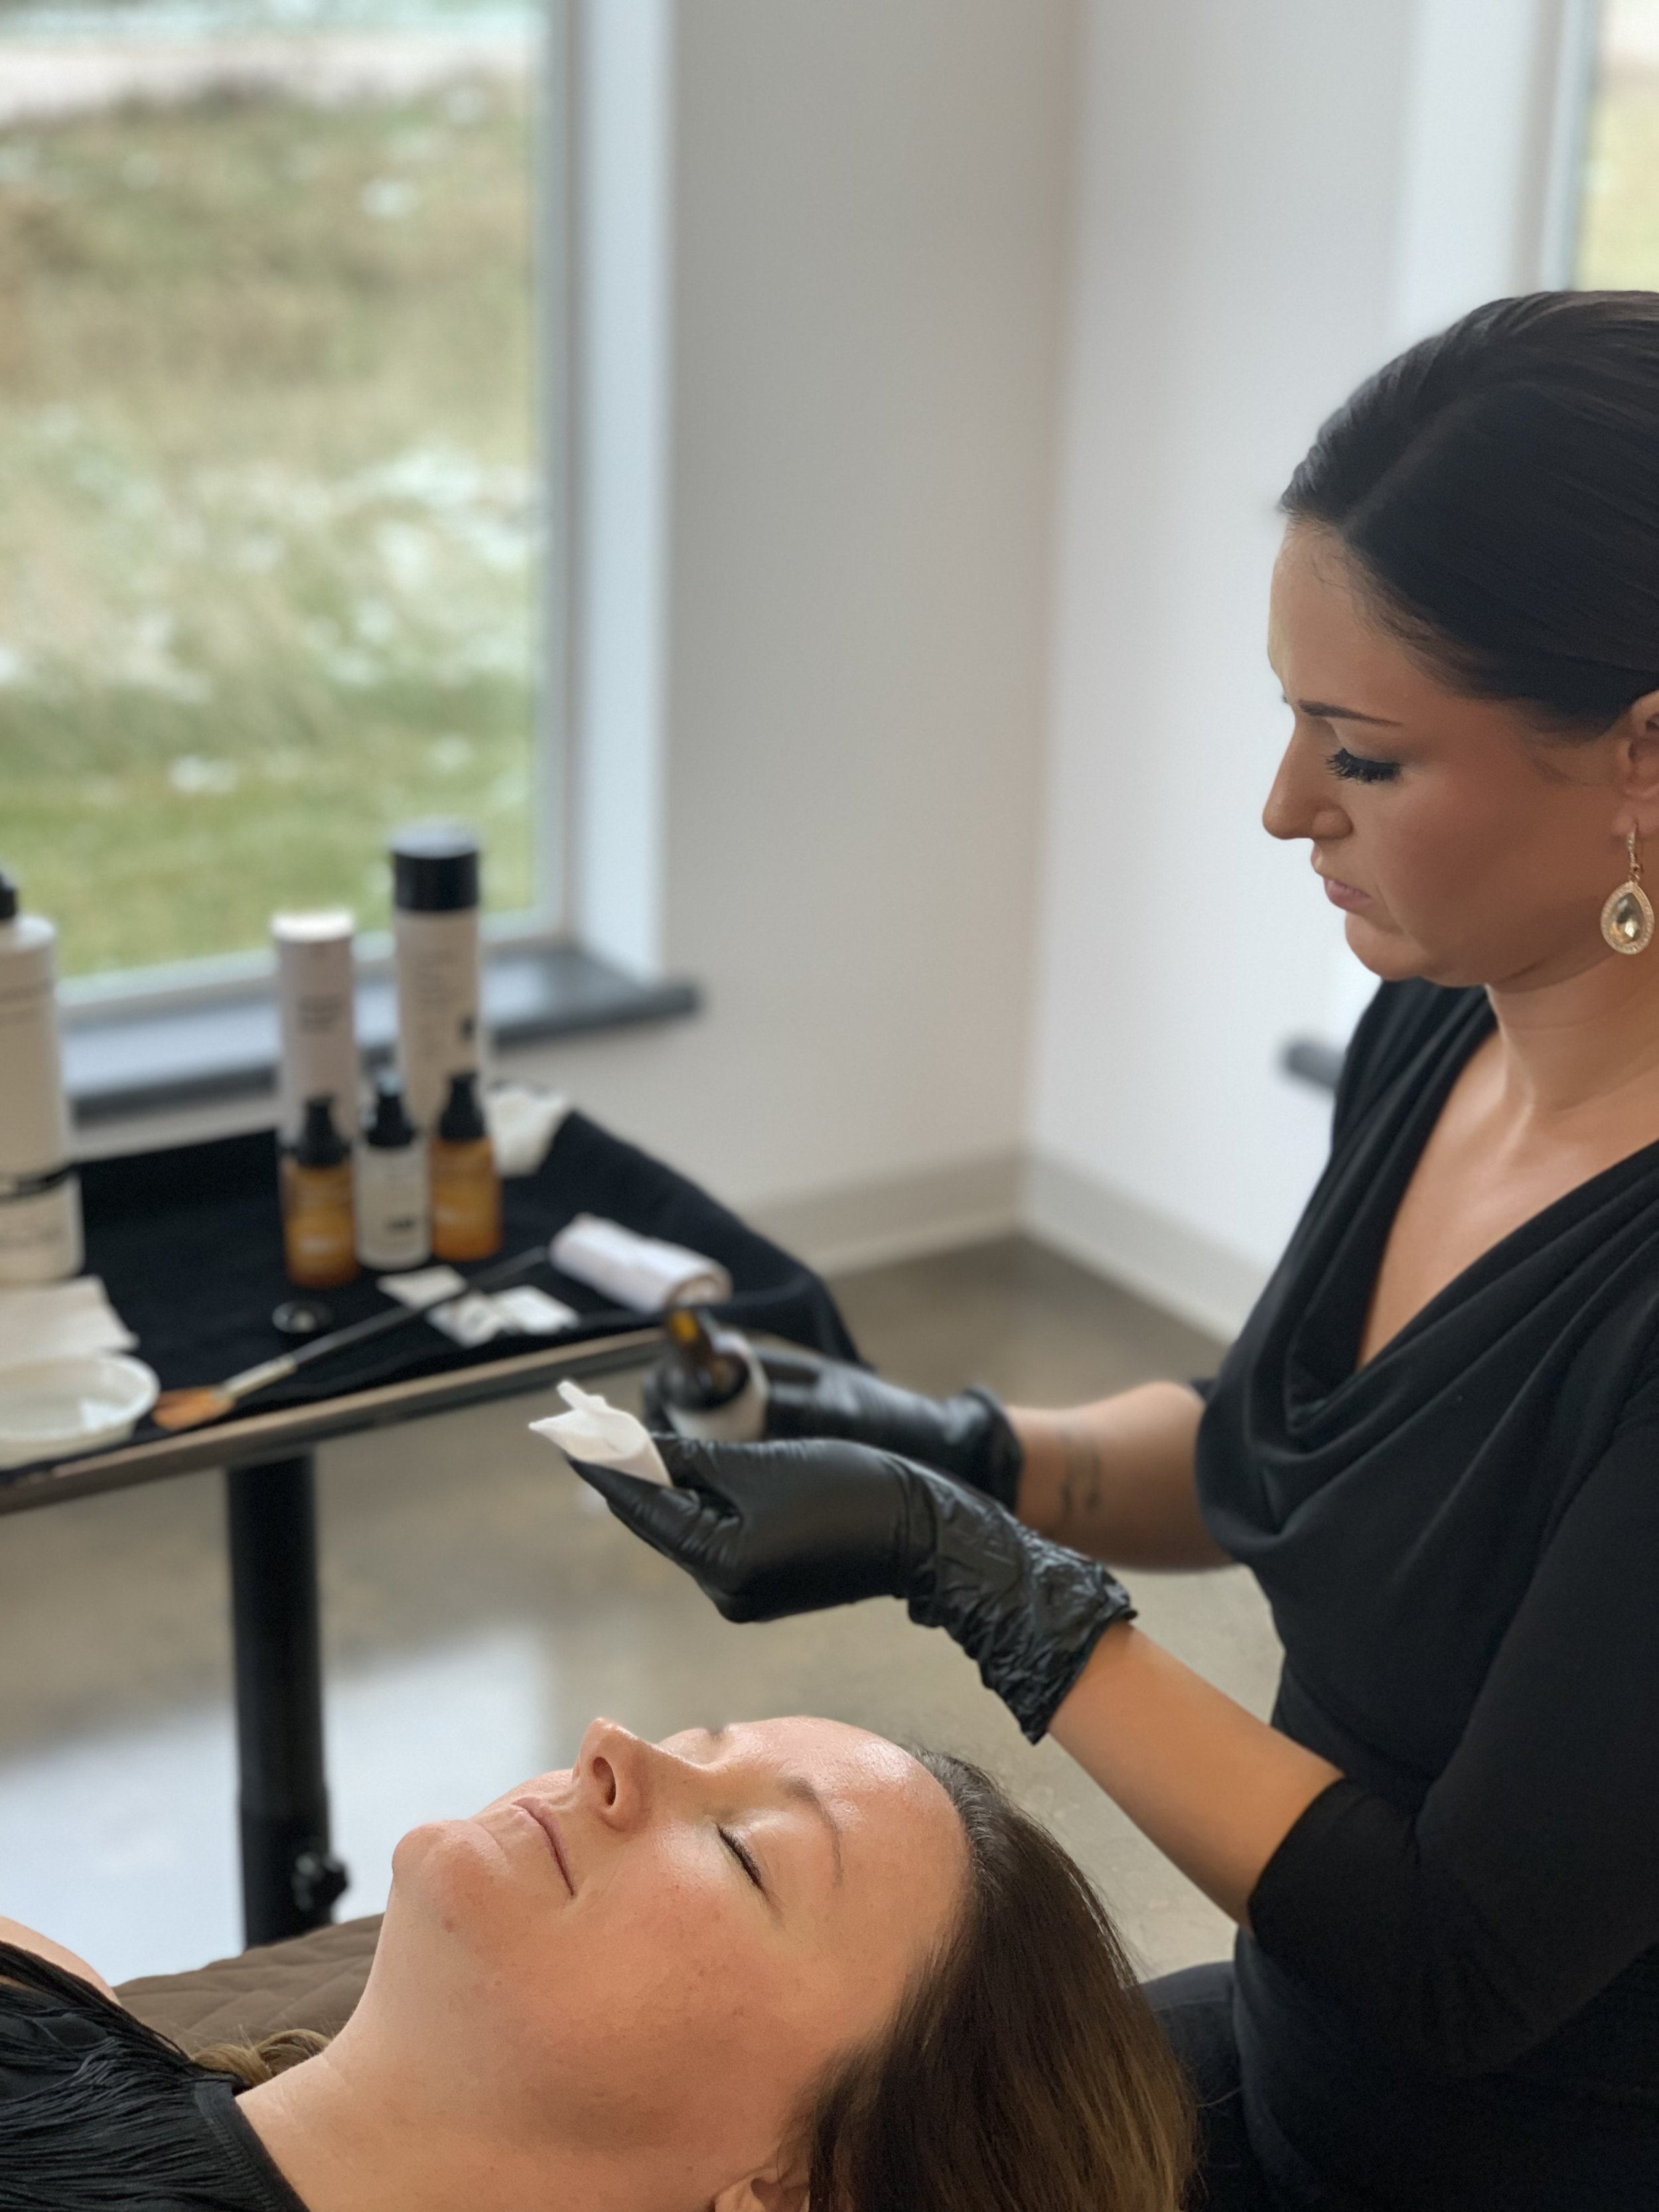 What is a chemical peel? - Peeling is a form of exfoliation, or shedding of dead or damaged surface cells to reveal new, healthy skin cells on the surface.As an added benefit, PCA peels deliver maximum results without any downtime.